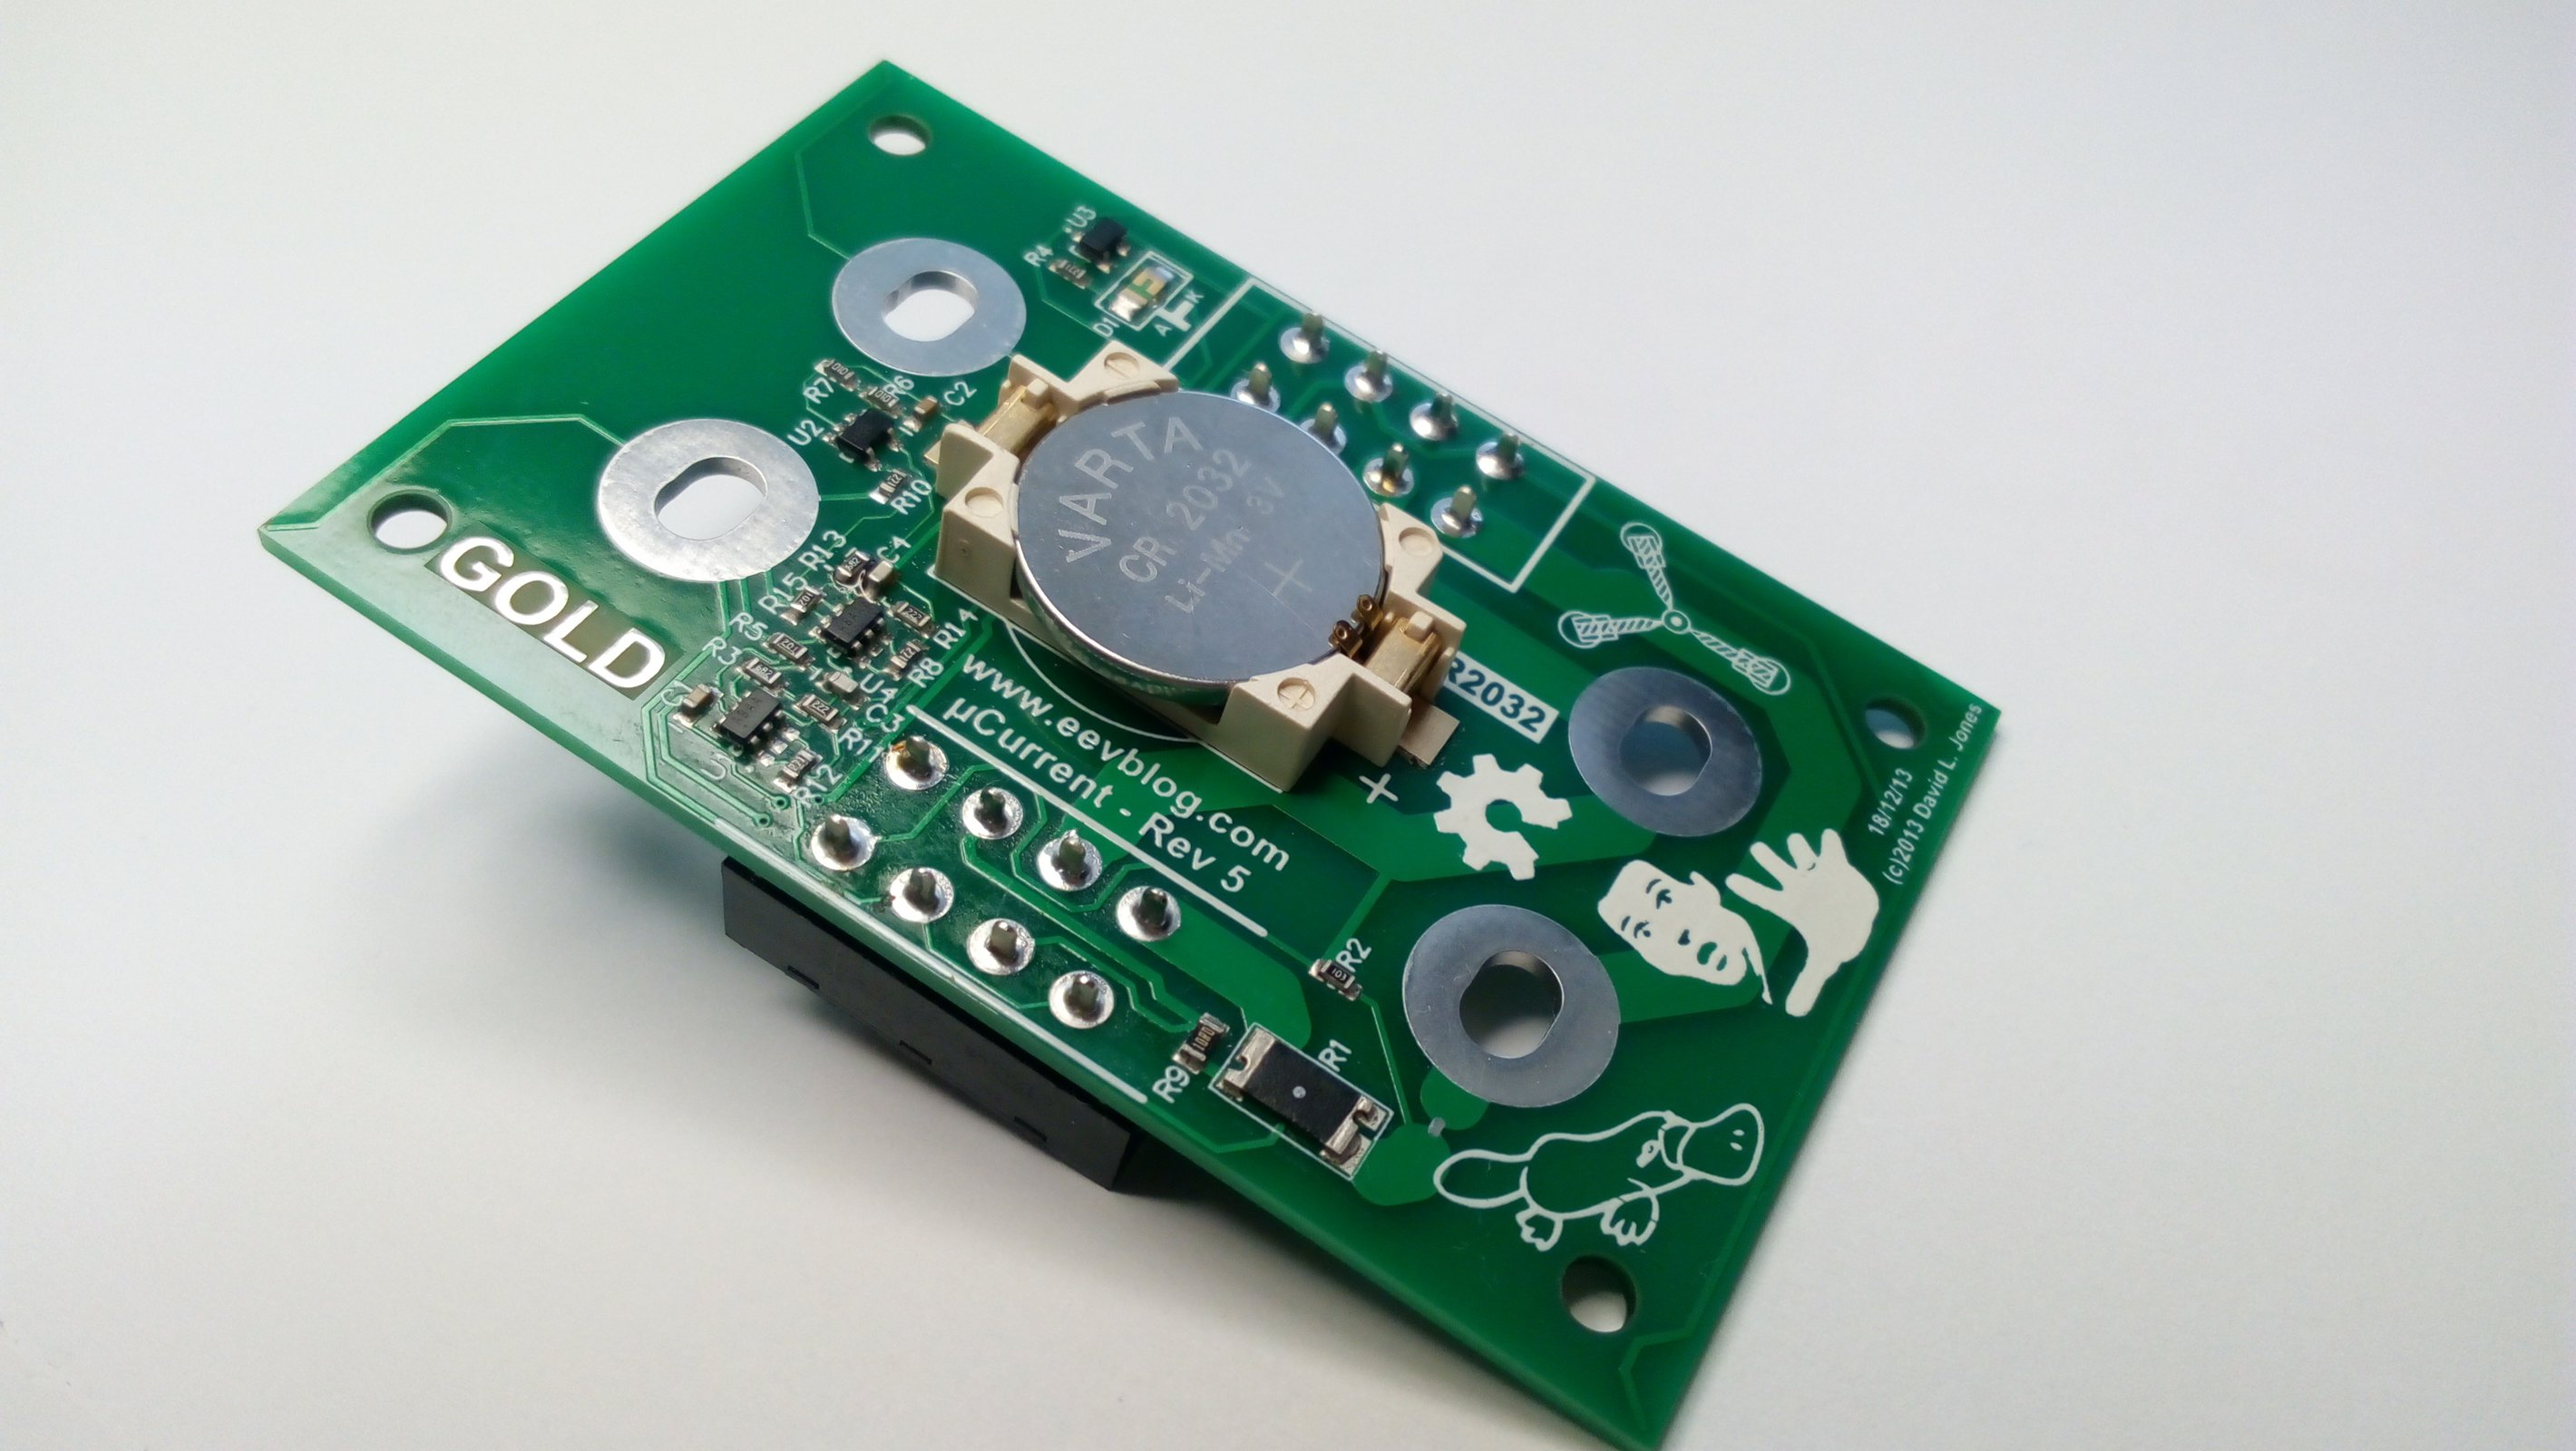 Ucurrent5 Circuit Board From Accelera Networks Ltd On Tindie Gold Plated 4